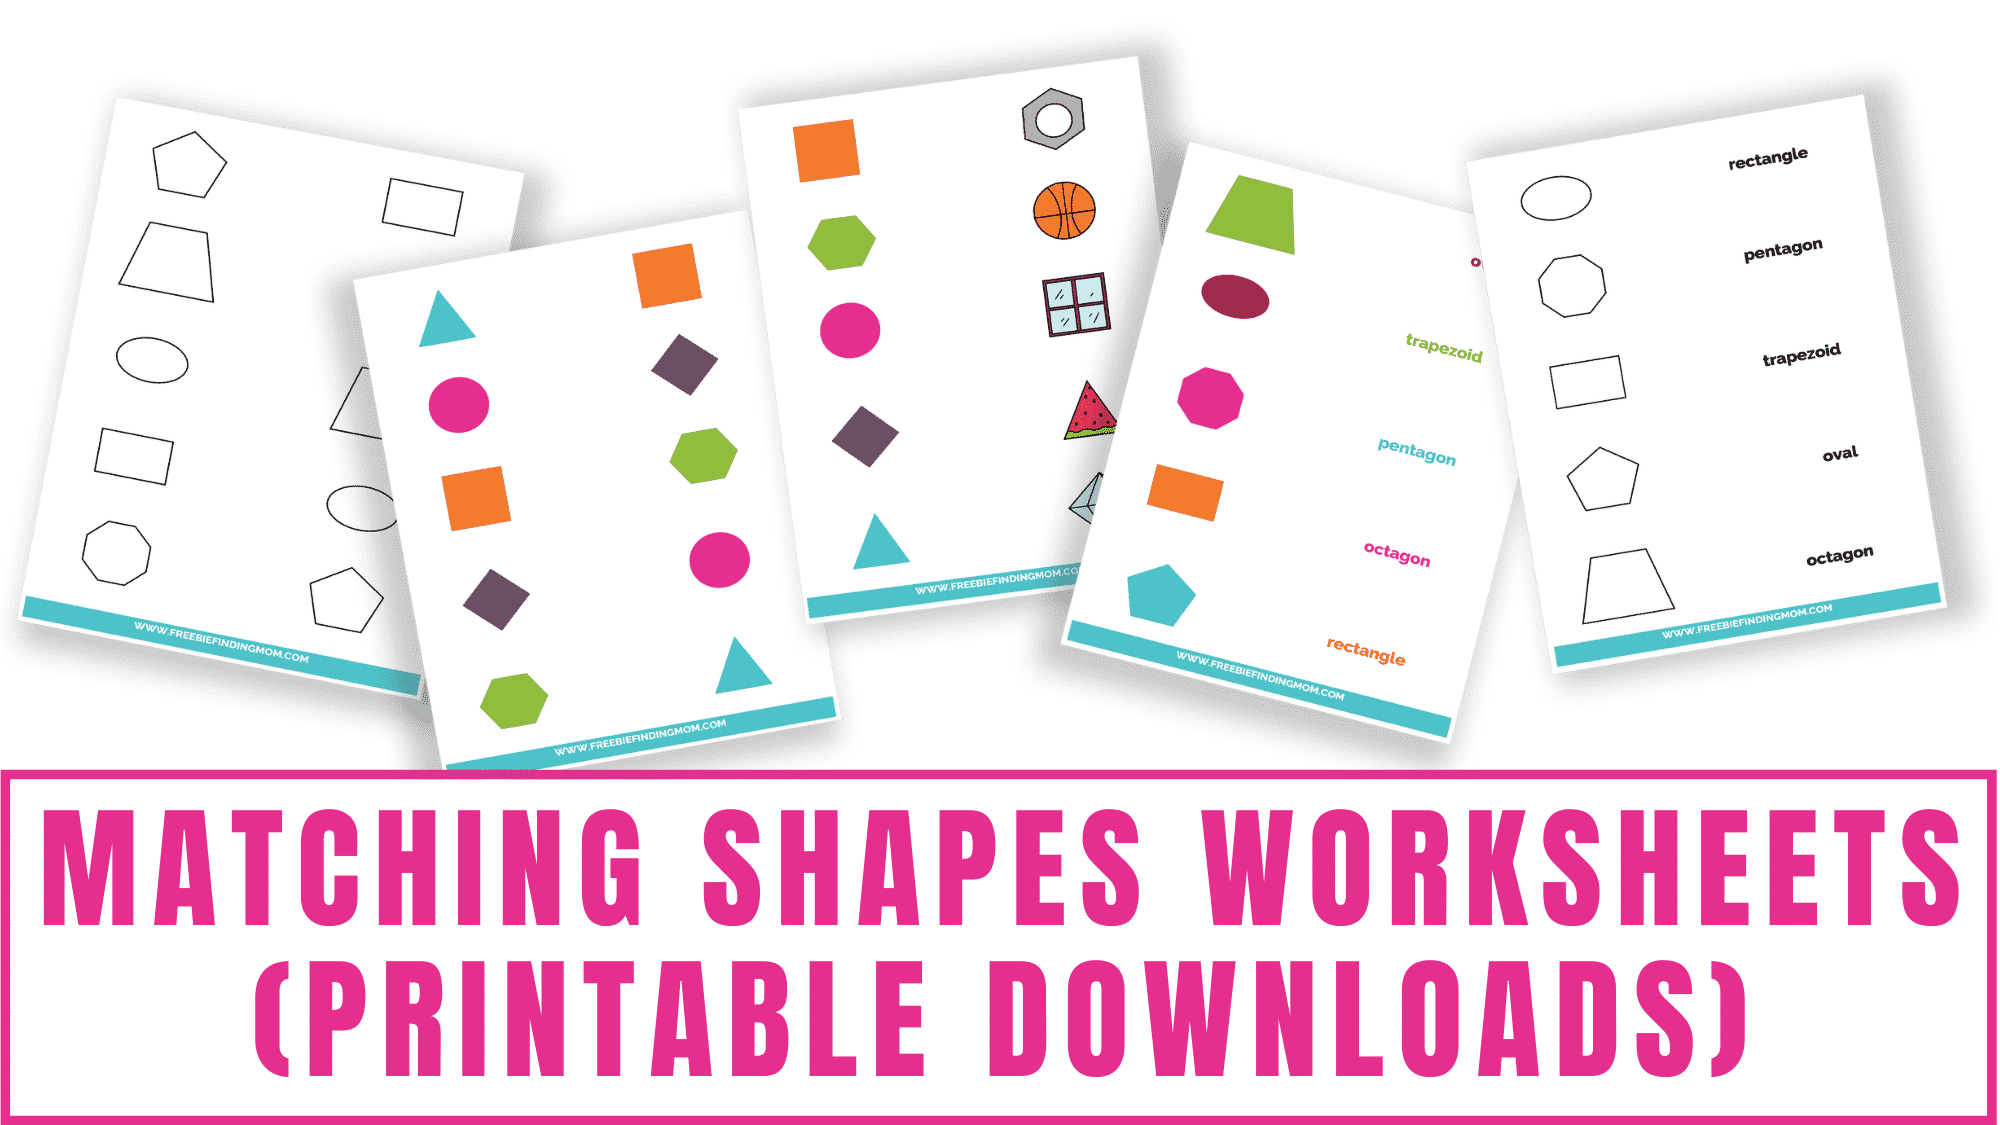 These matching shapes worksheets printable downloads are perfect for preschoolers and kindergarteners. Toddlers may need help with the matching shapes worksheets with words.